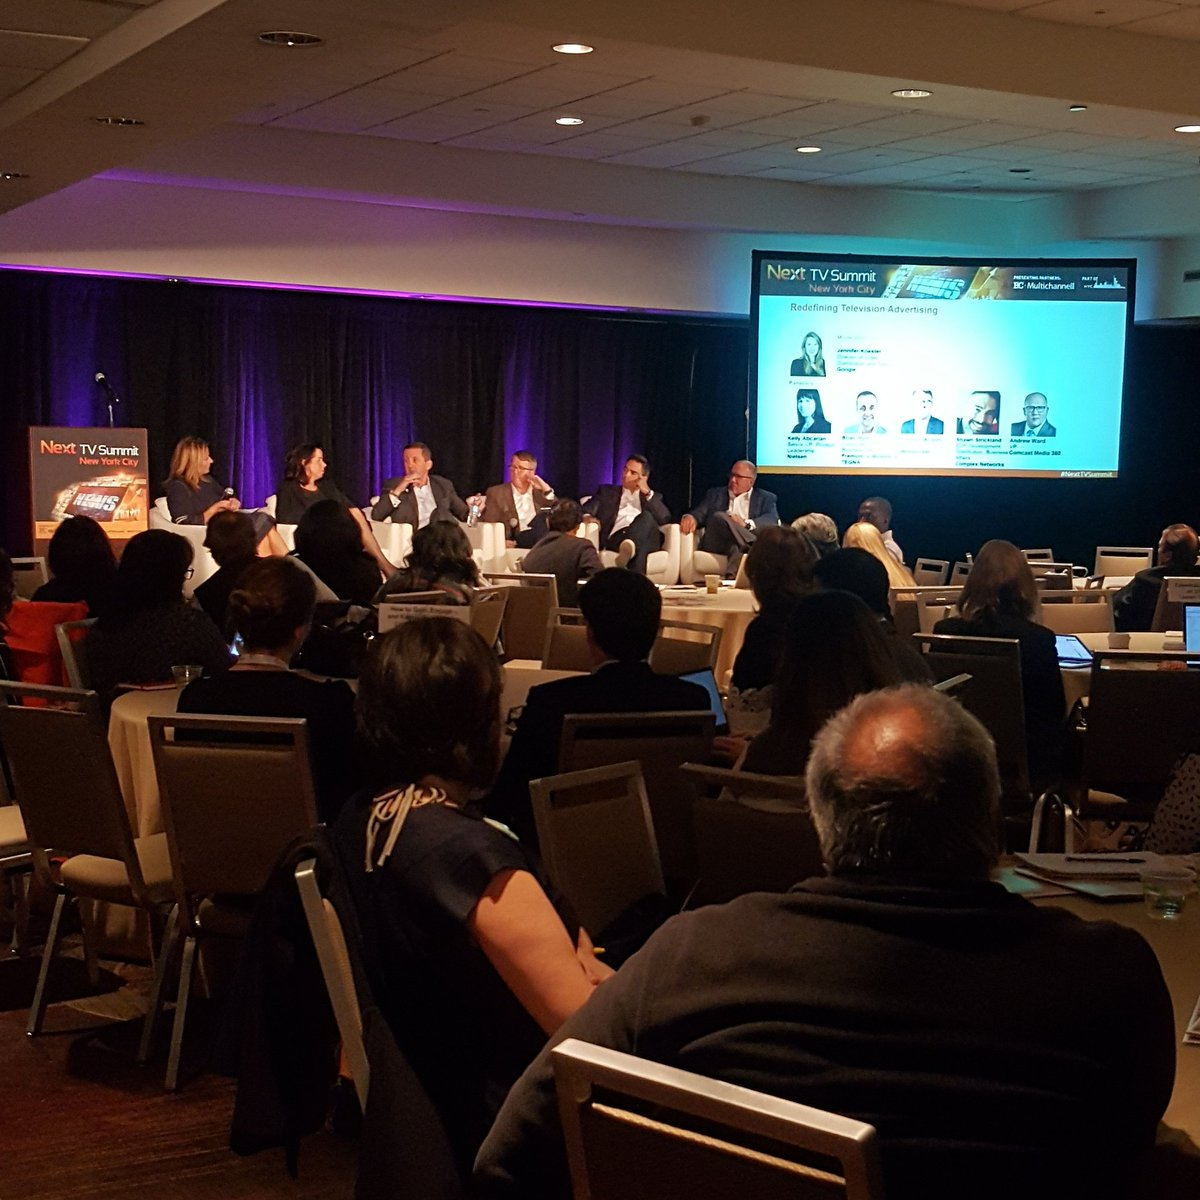 We&#39;re talking Redefining TV #Advertising at #NextTVSummit feat. #google #nielsen, #preemion, #mediaocean, #complex &amp; #comcastmedia360<br>http://pic.twitter.com/FYX5aIHNsv &ndash; à Sheraton New York Times Square Hotel